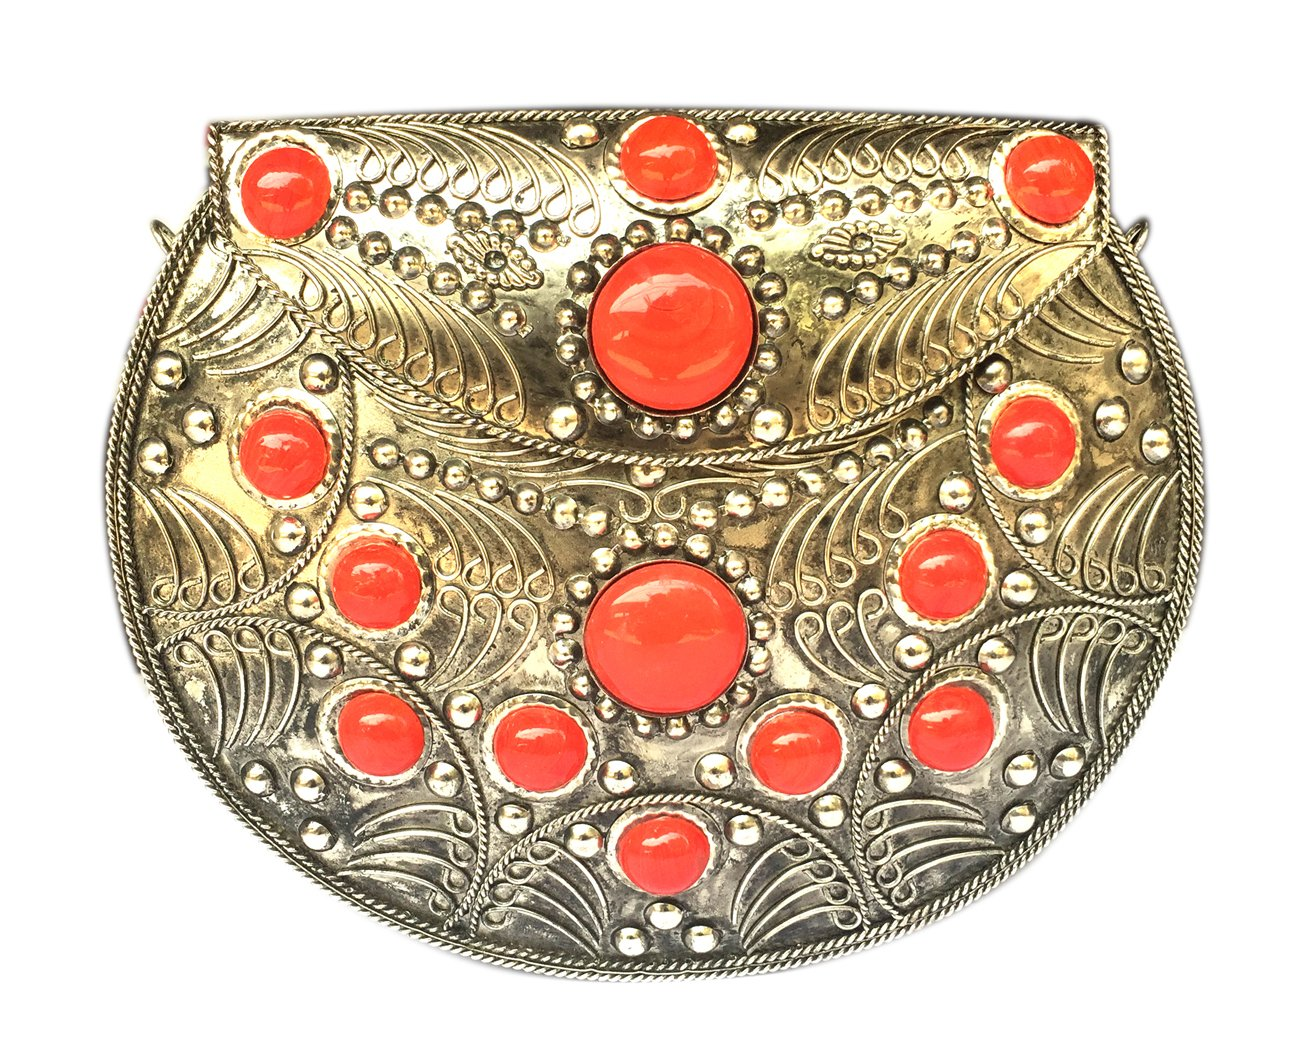 Handmade Antique Metal and Glass Beads Clutch Wallet Handbag with Silver Chain for Women/Girls